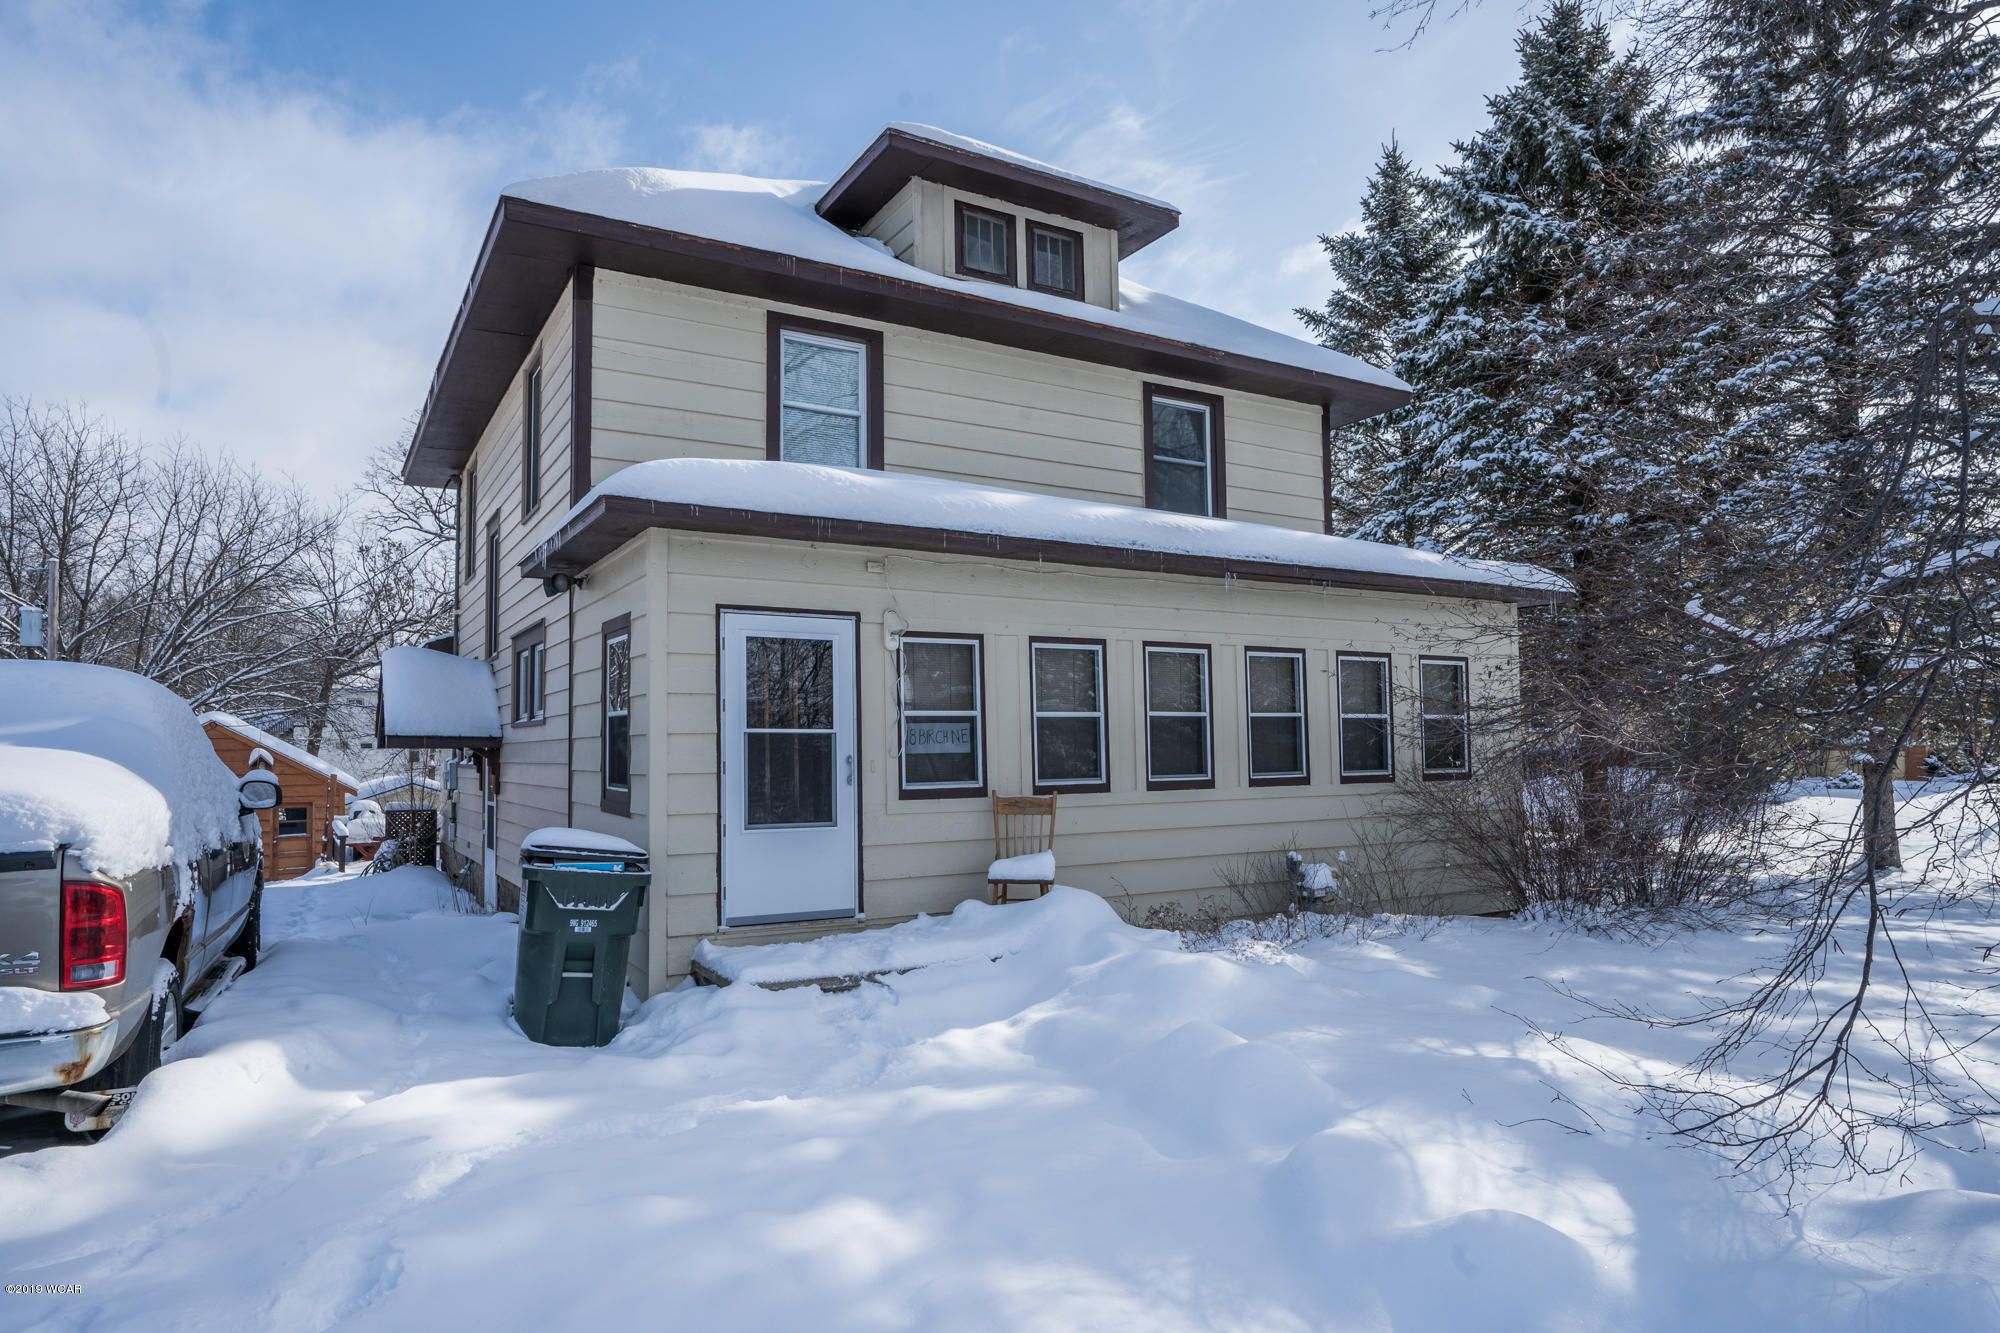 18 Birch Street,New London,3 Bedrooms Bedrooms,2 BathroomsBathrooms,Single Family,Birch Street,6033481